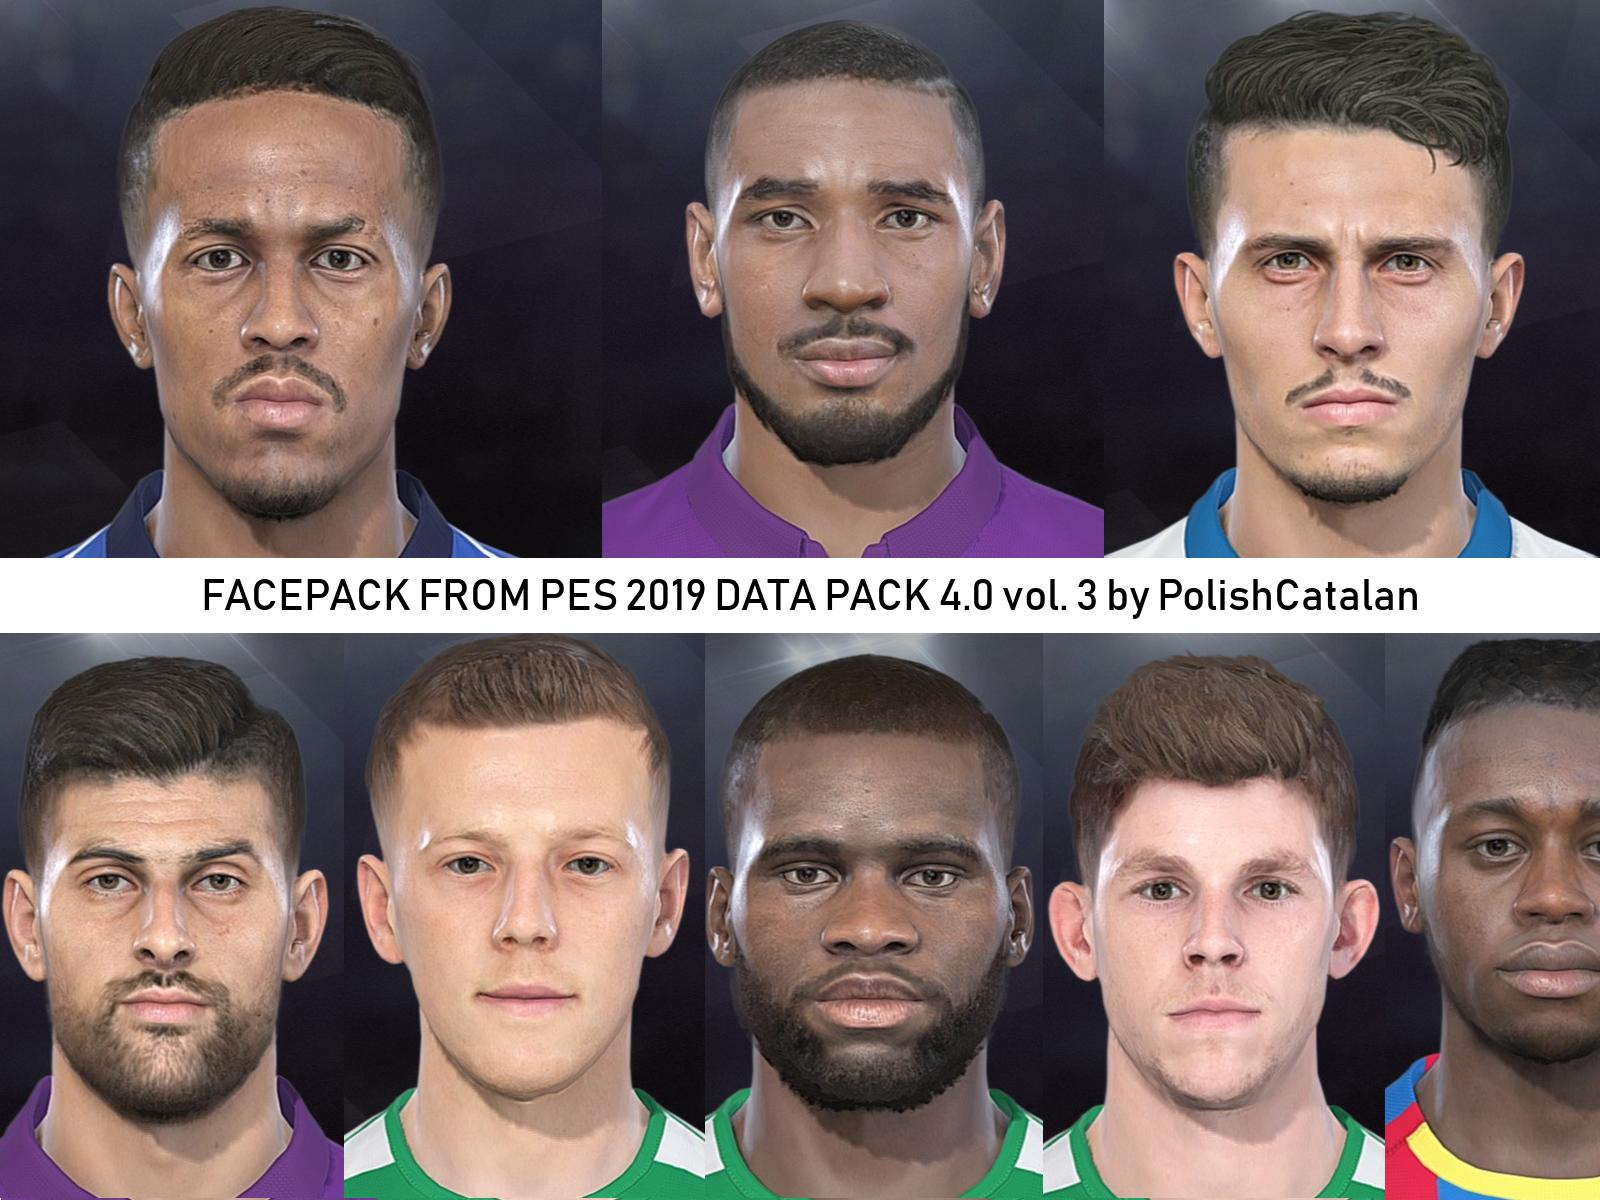 PES 2018 Facepack From PES 2019 Data Pack 4.0 vol. 3 by PolishCatalan